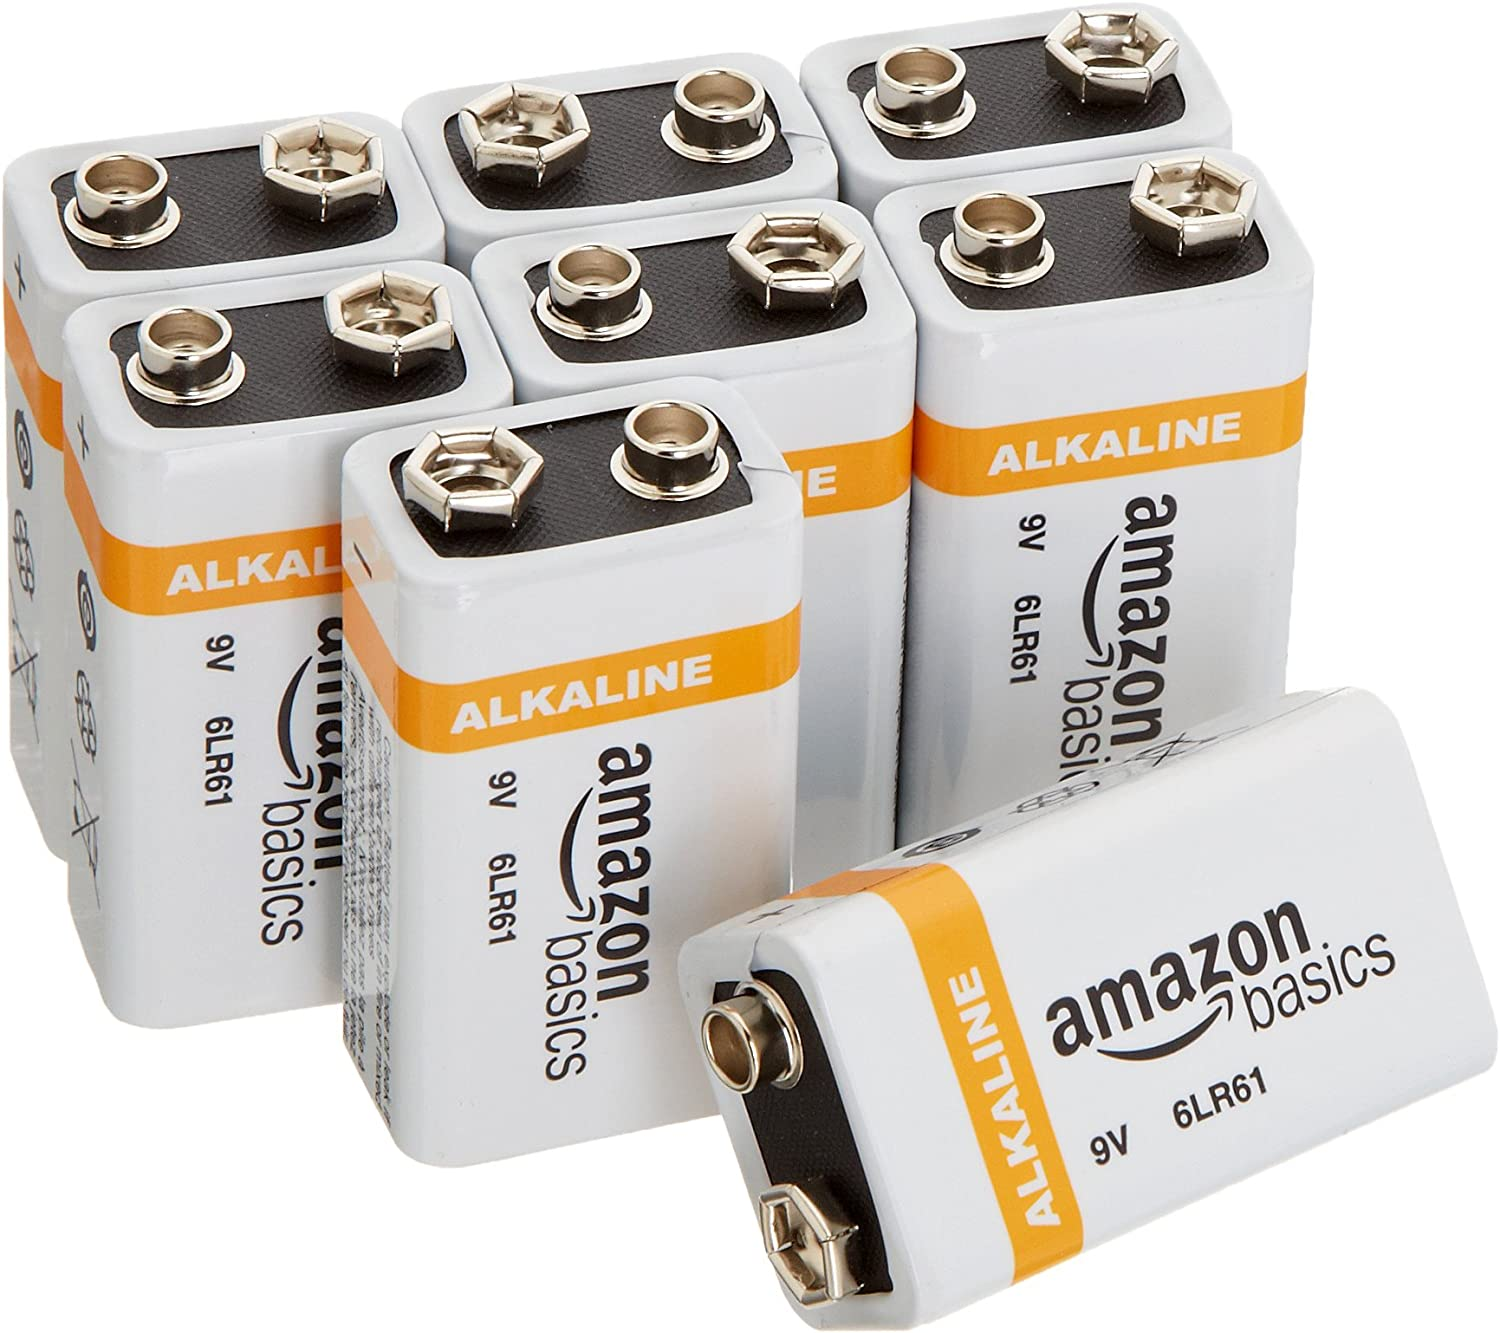 AmazonBasics 9 Volt Everyday Alkaline Battery - Pack of 8